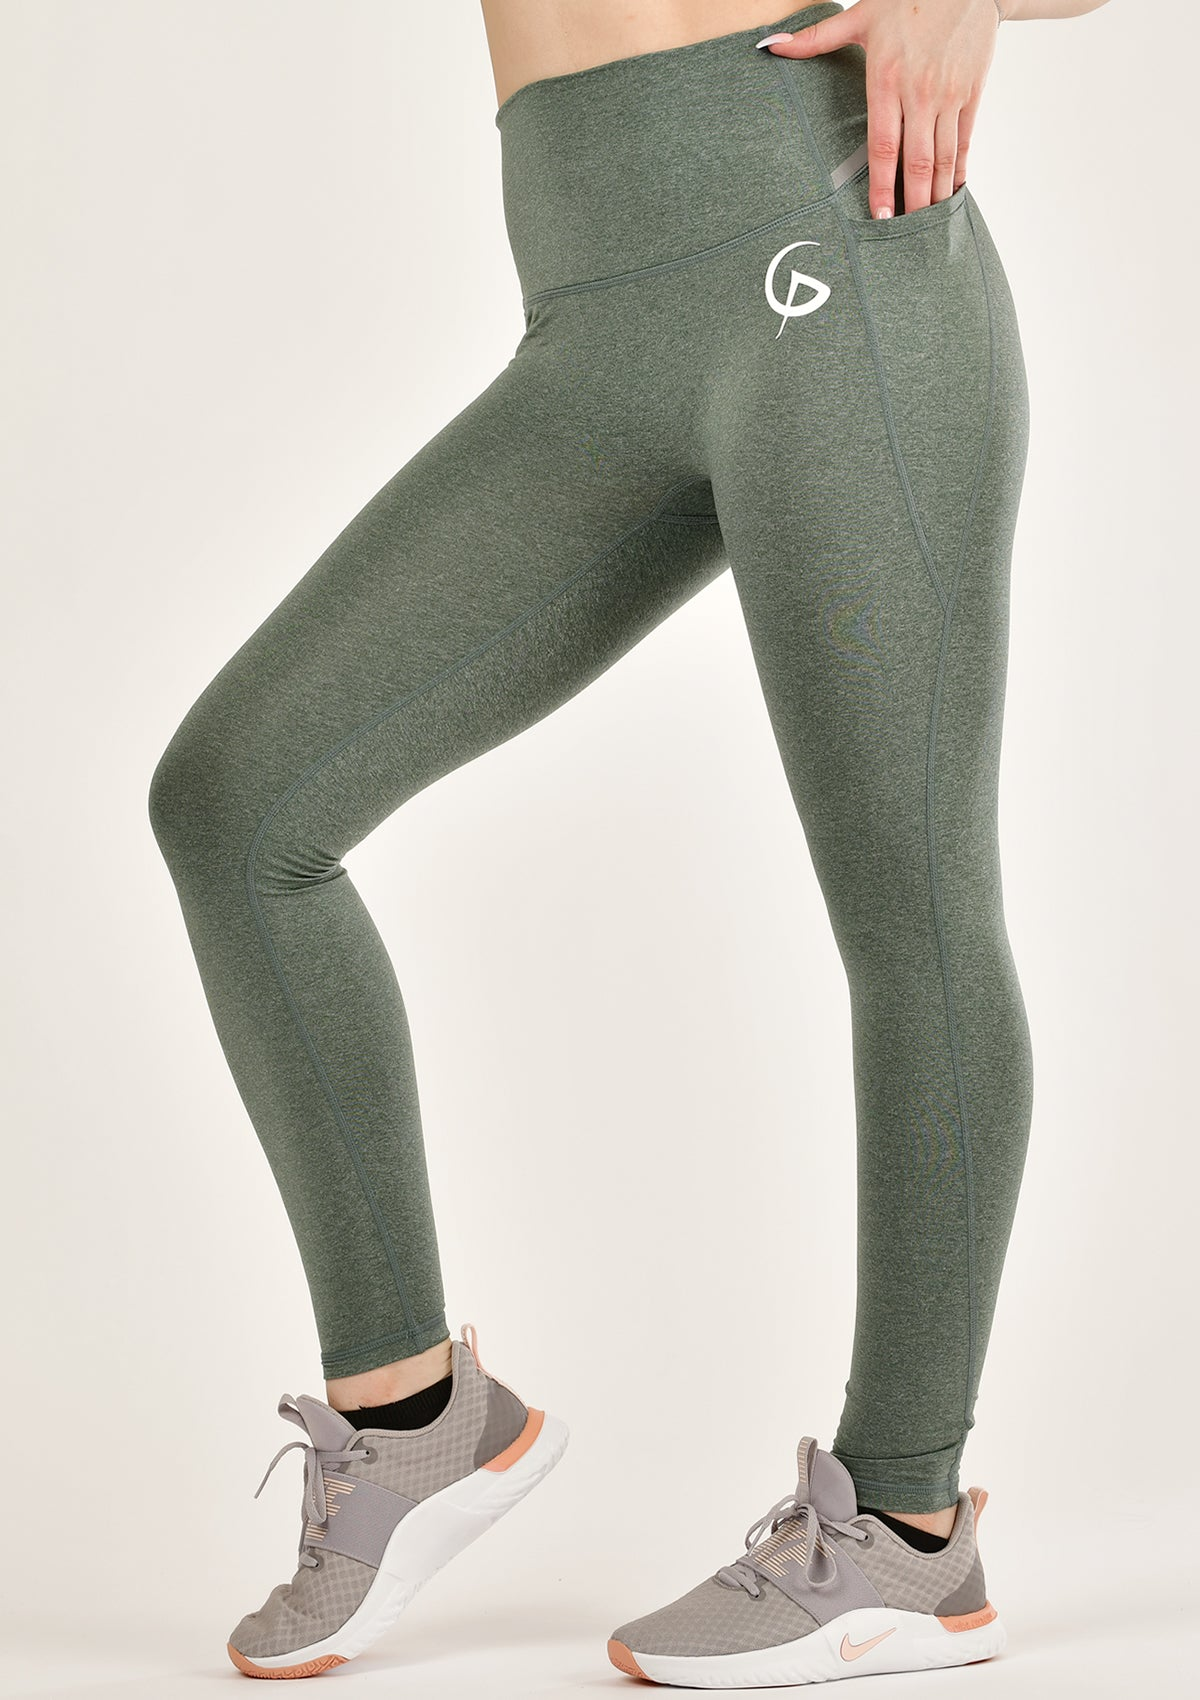 Motive Khaki Leggings